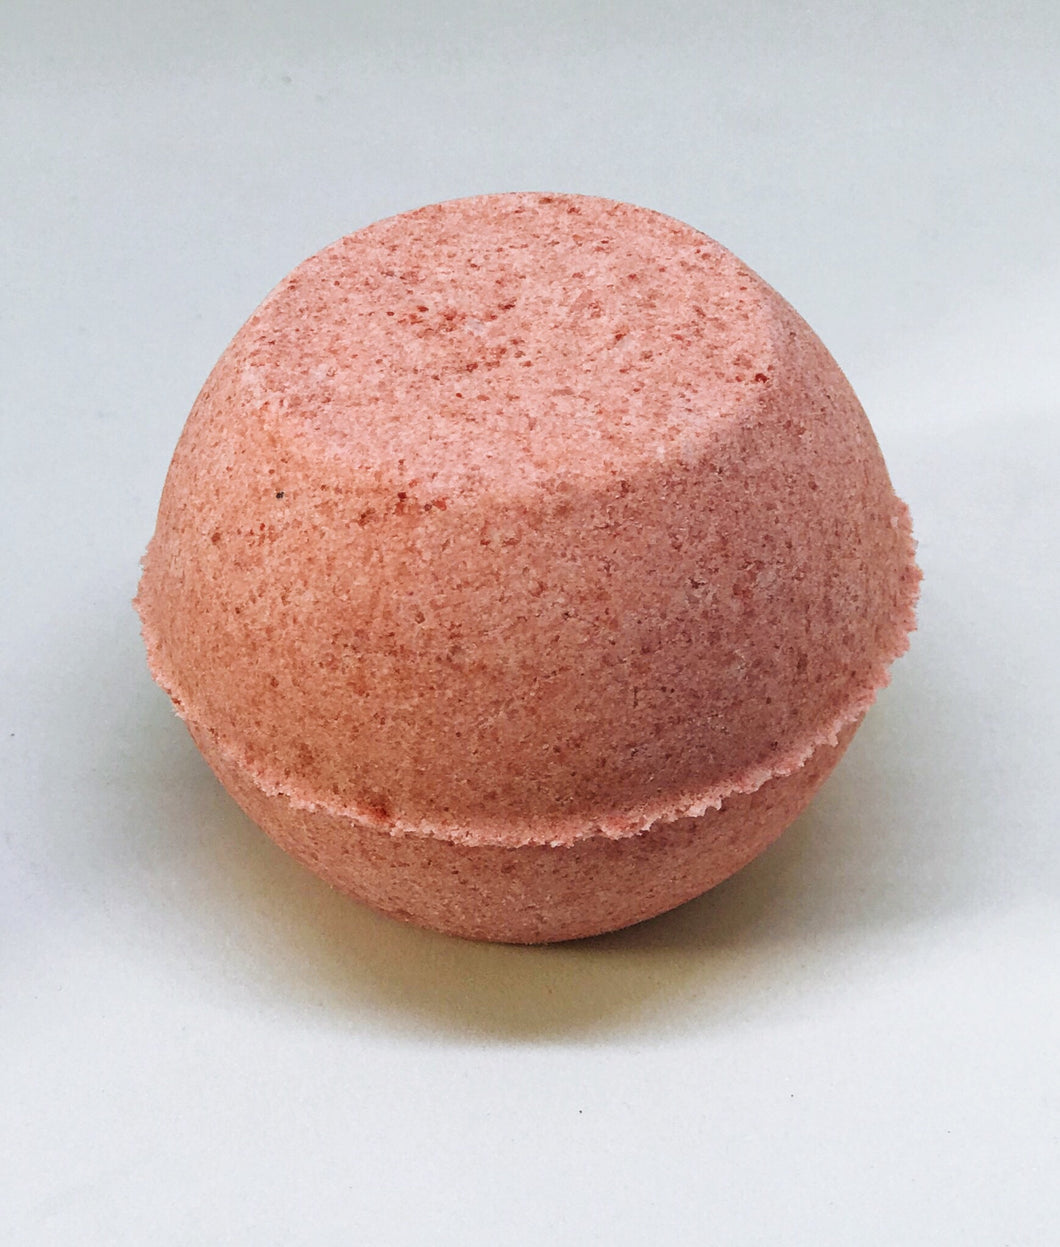 Japanese Cherry Blossom Bath Bomb